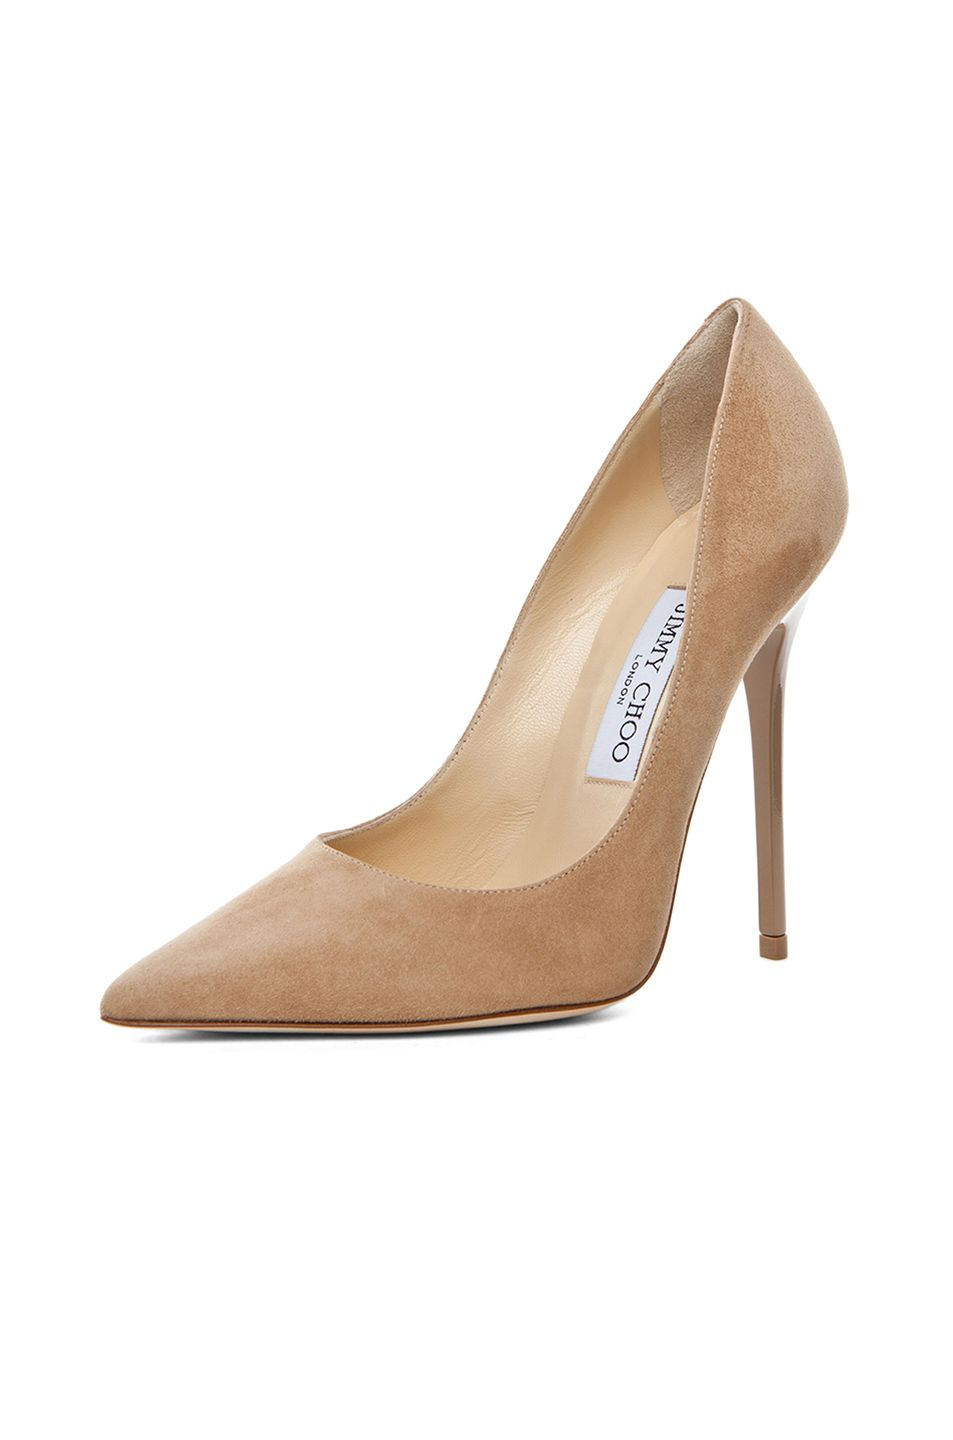 648d72d715 Image 2 of Jimmy Choo Anouk Suede Pumps in Nude   Shoes & Socks ...